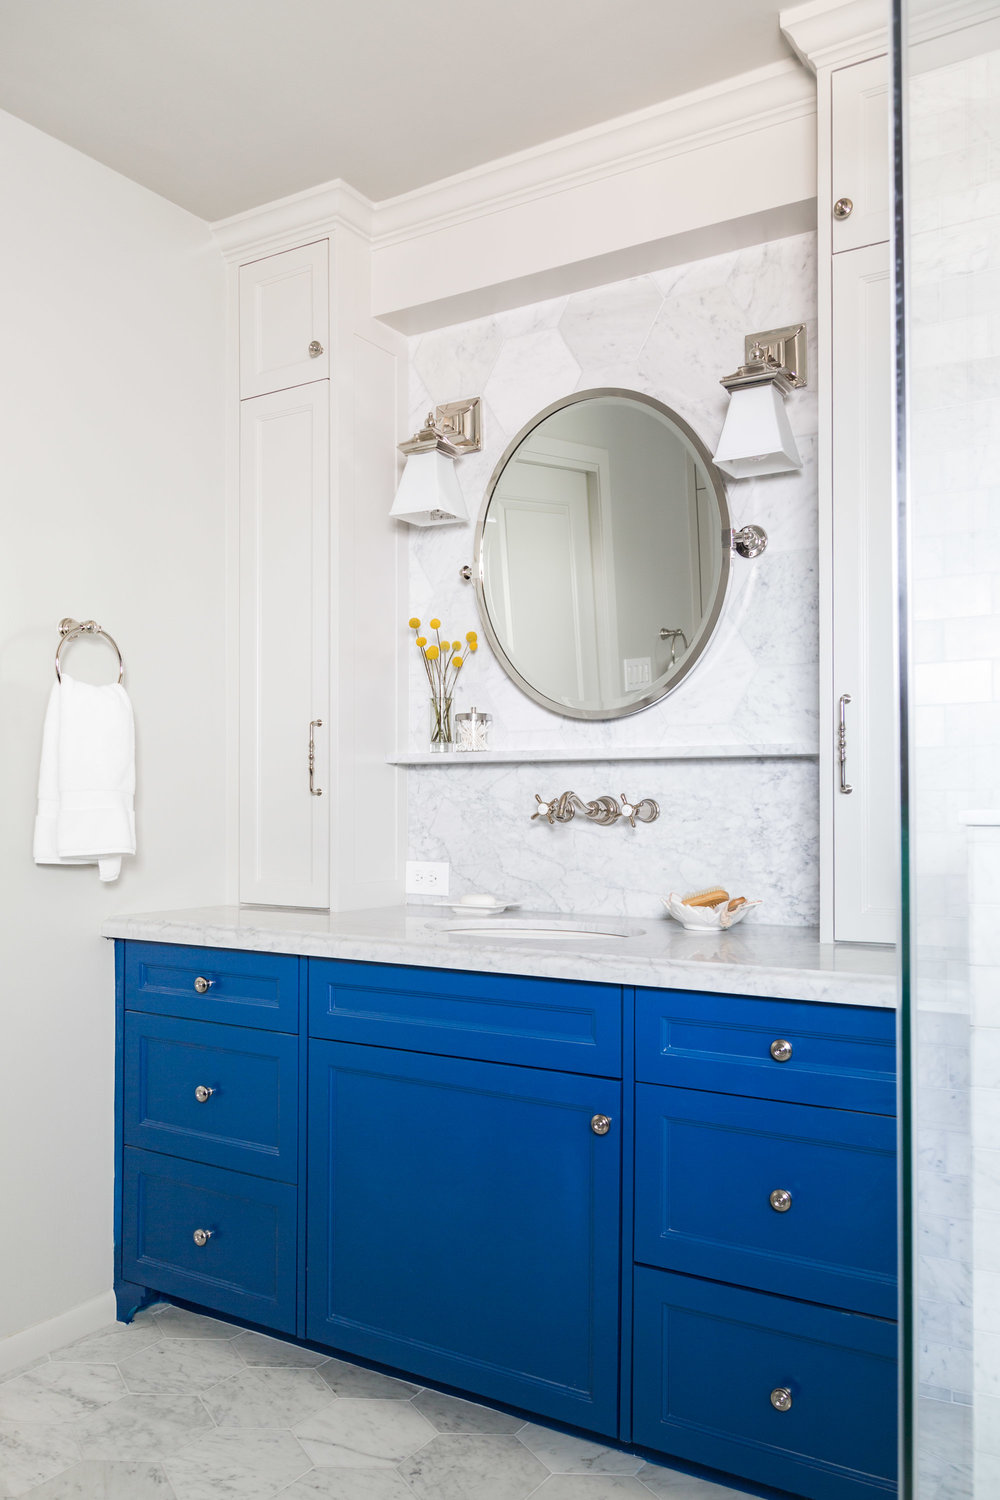 Pivot mirror and wall mount faucet at vanity with hex marble tile | Carla Aston, Designer | Tori Aston, Photographer